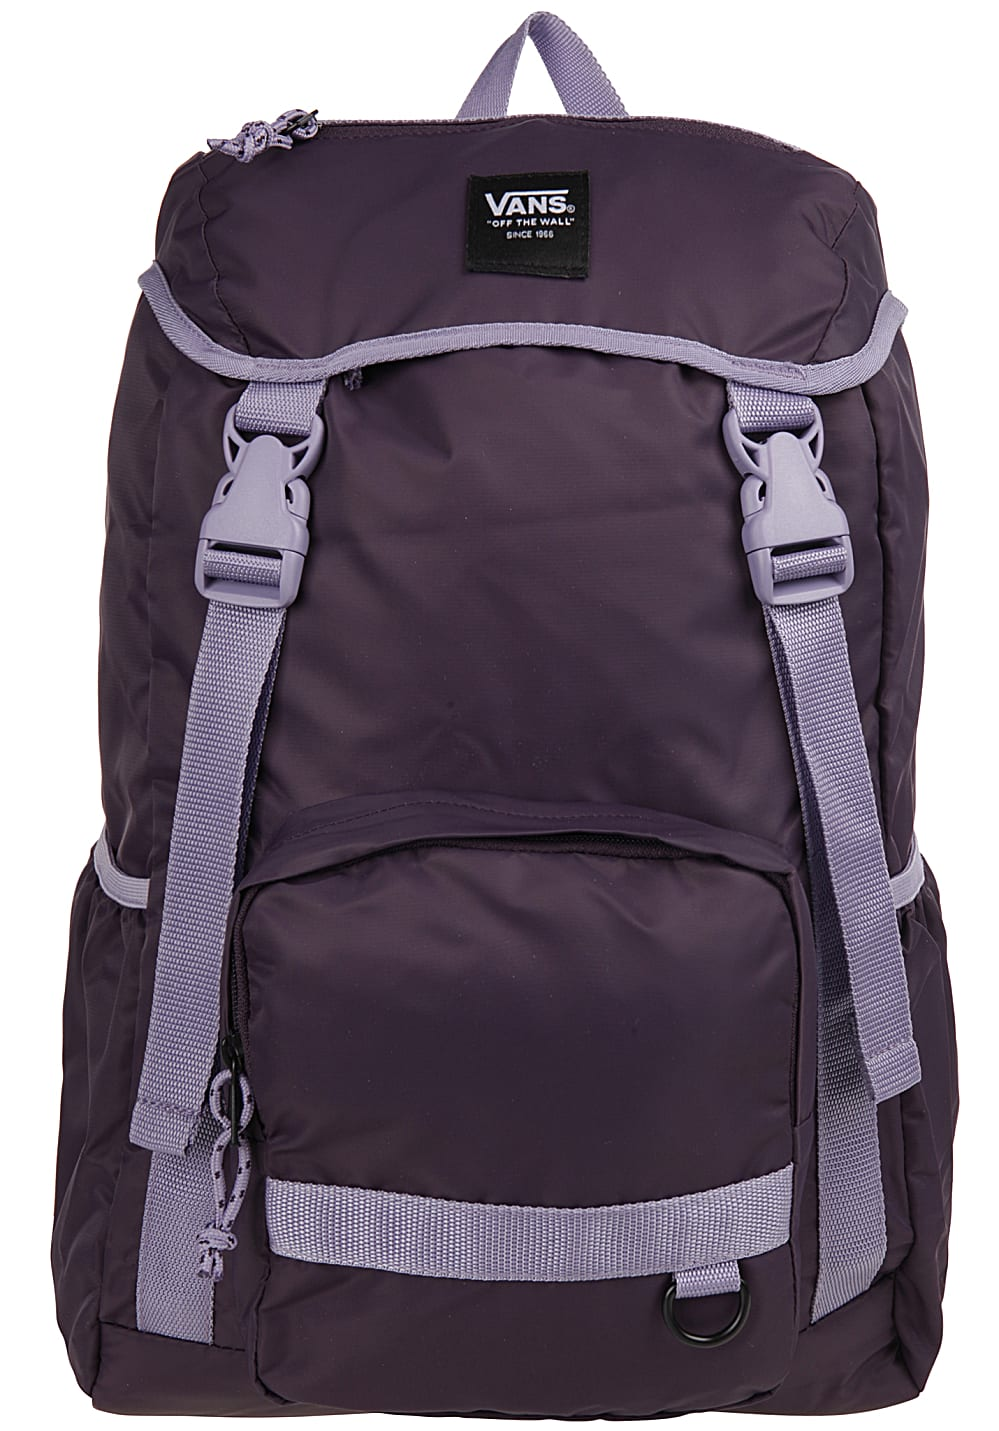 Vans Ranger - Backpack - Purple - Planet Sports